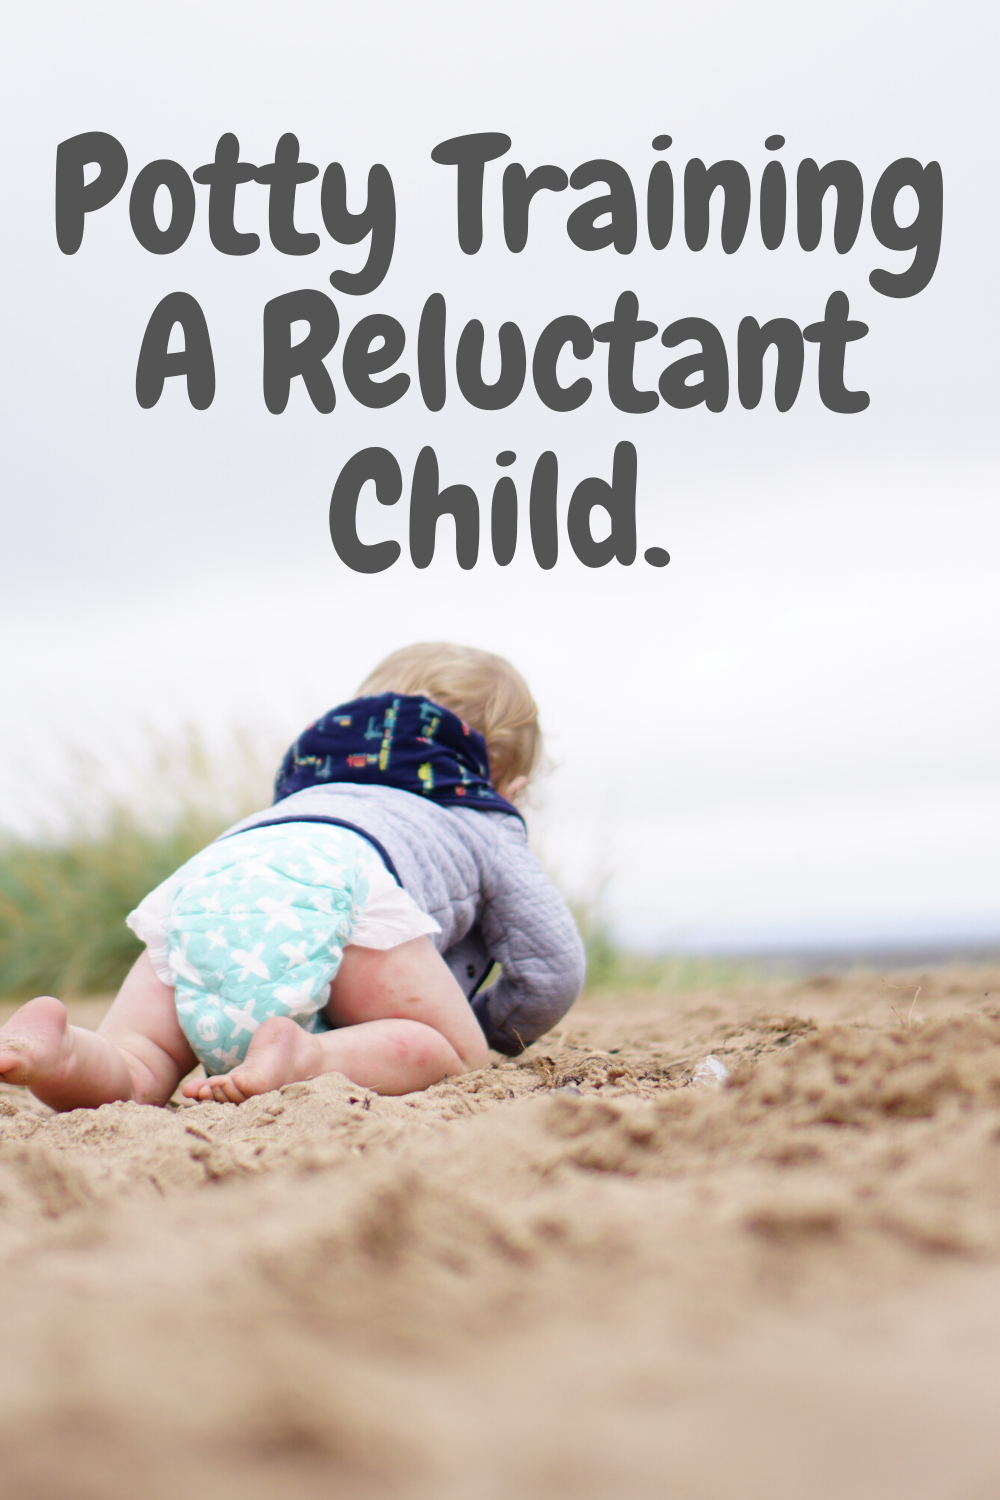 Potty training a reluctant child